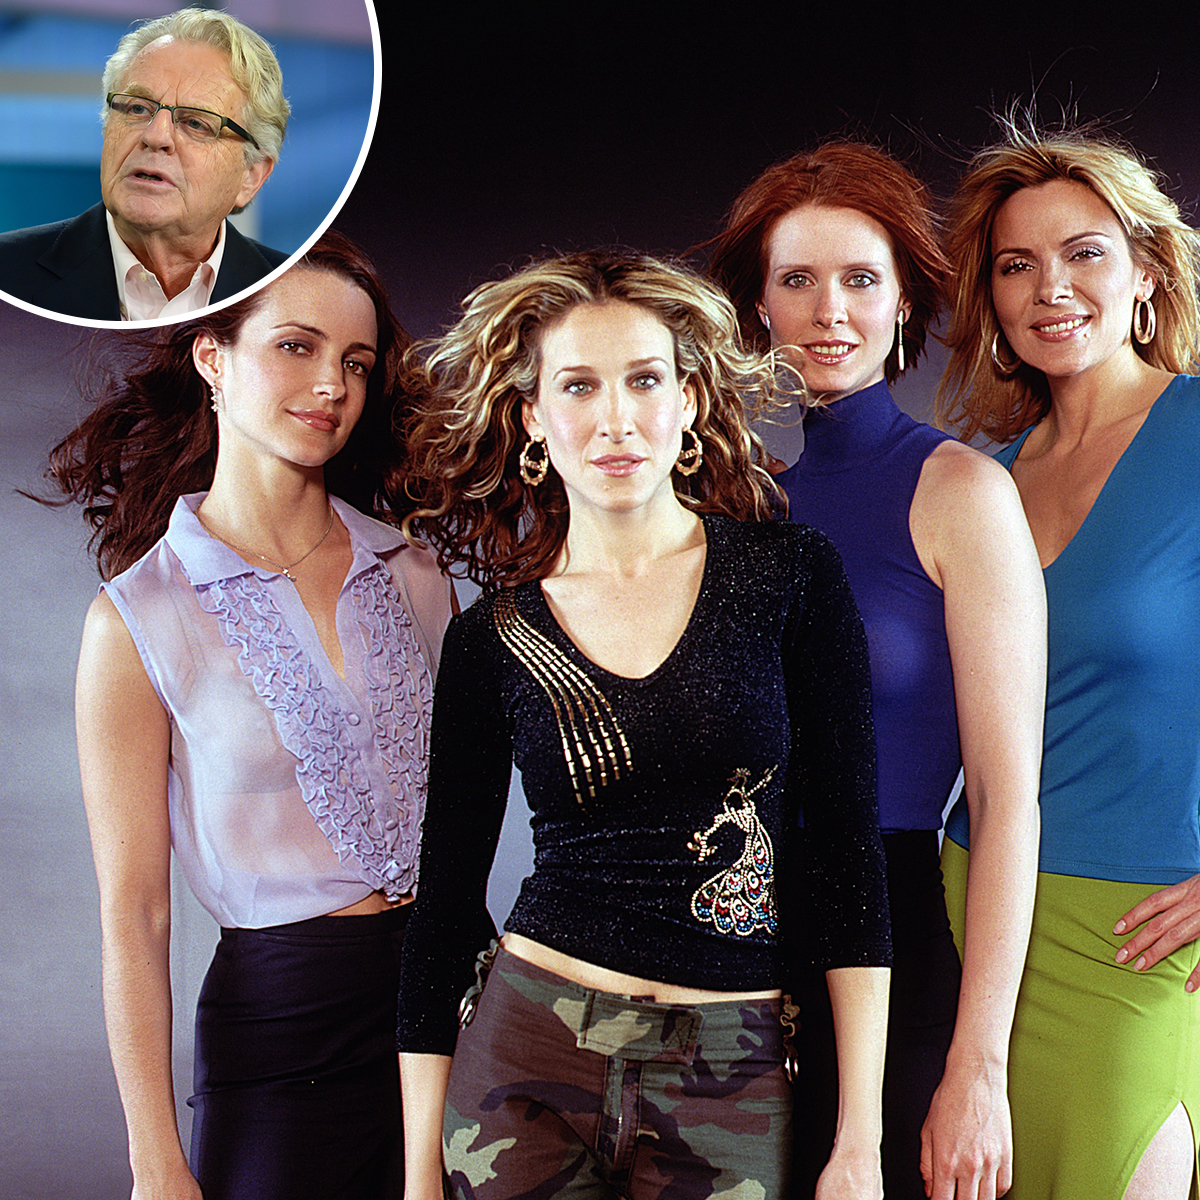 Jerry Springer Just Weighed in on the Replacing Kim Cattrall in Sex and the City's Revival Debate